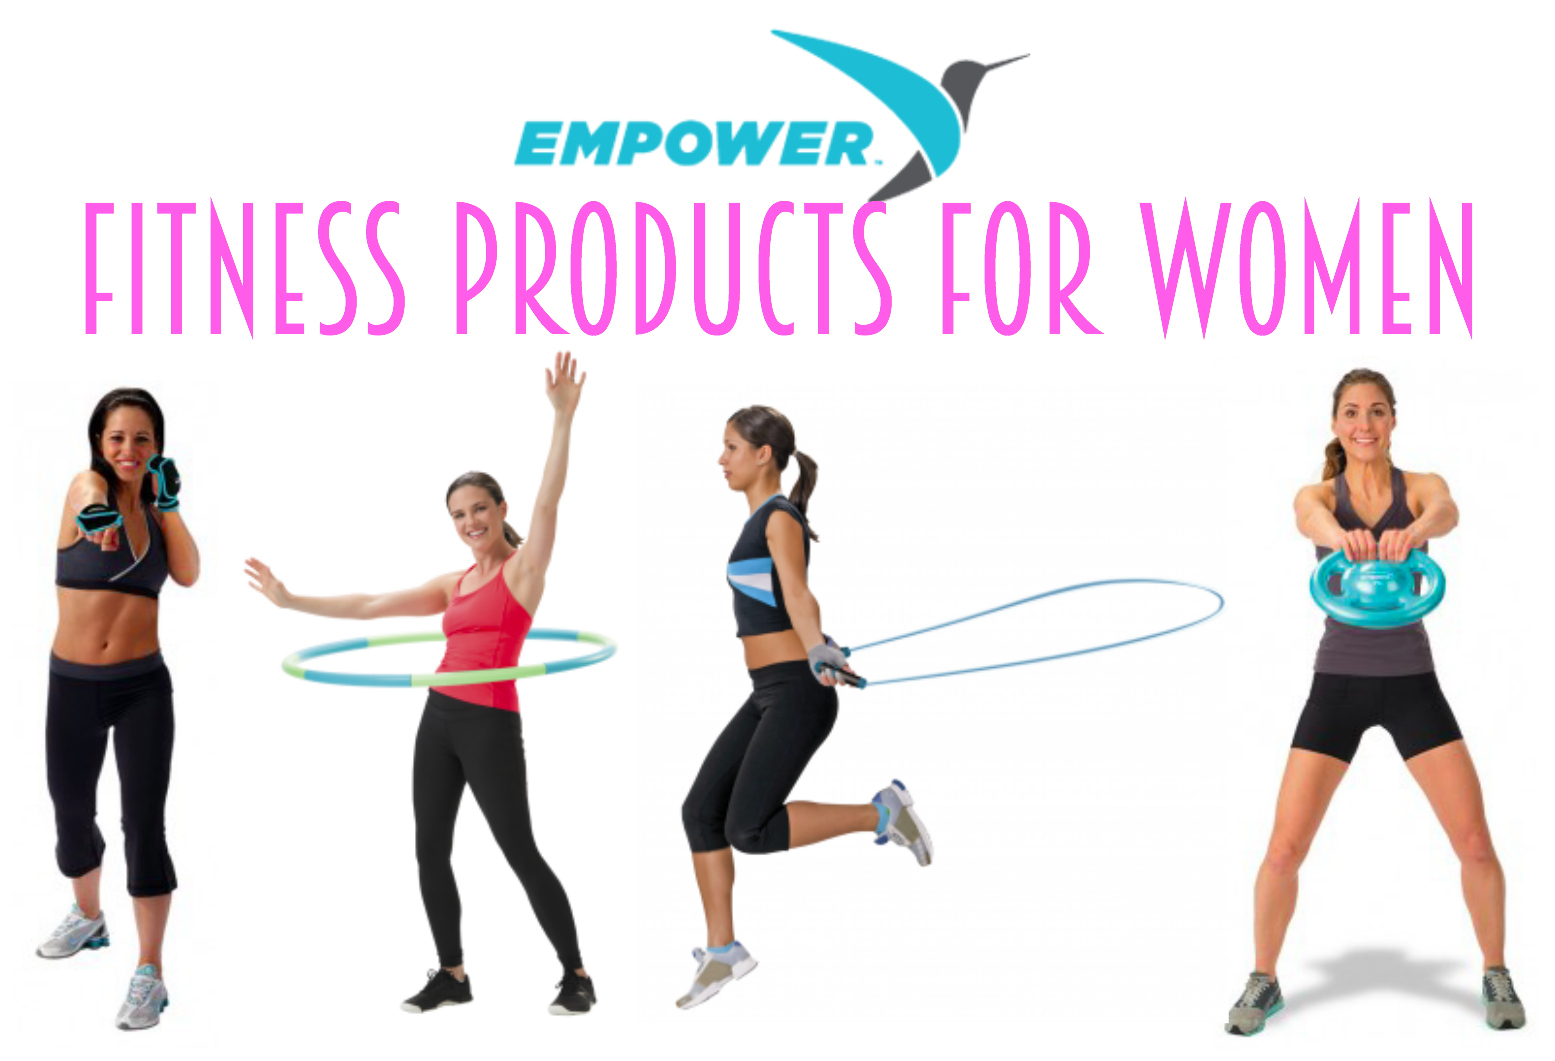 Empower Fitness products for women